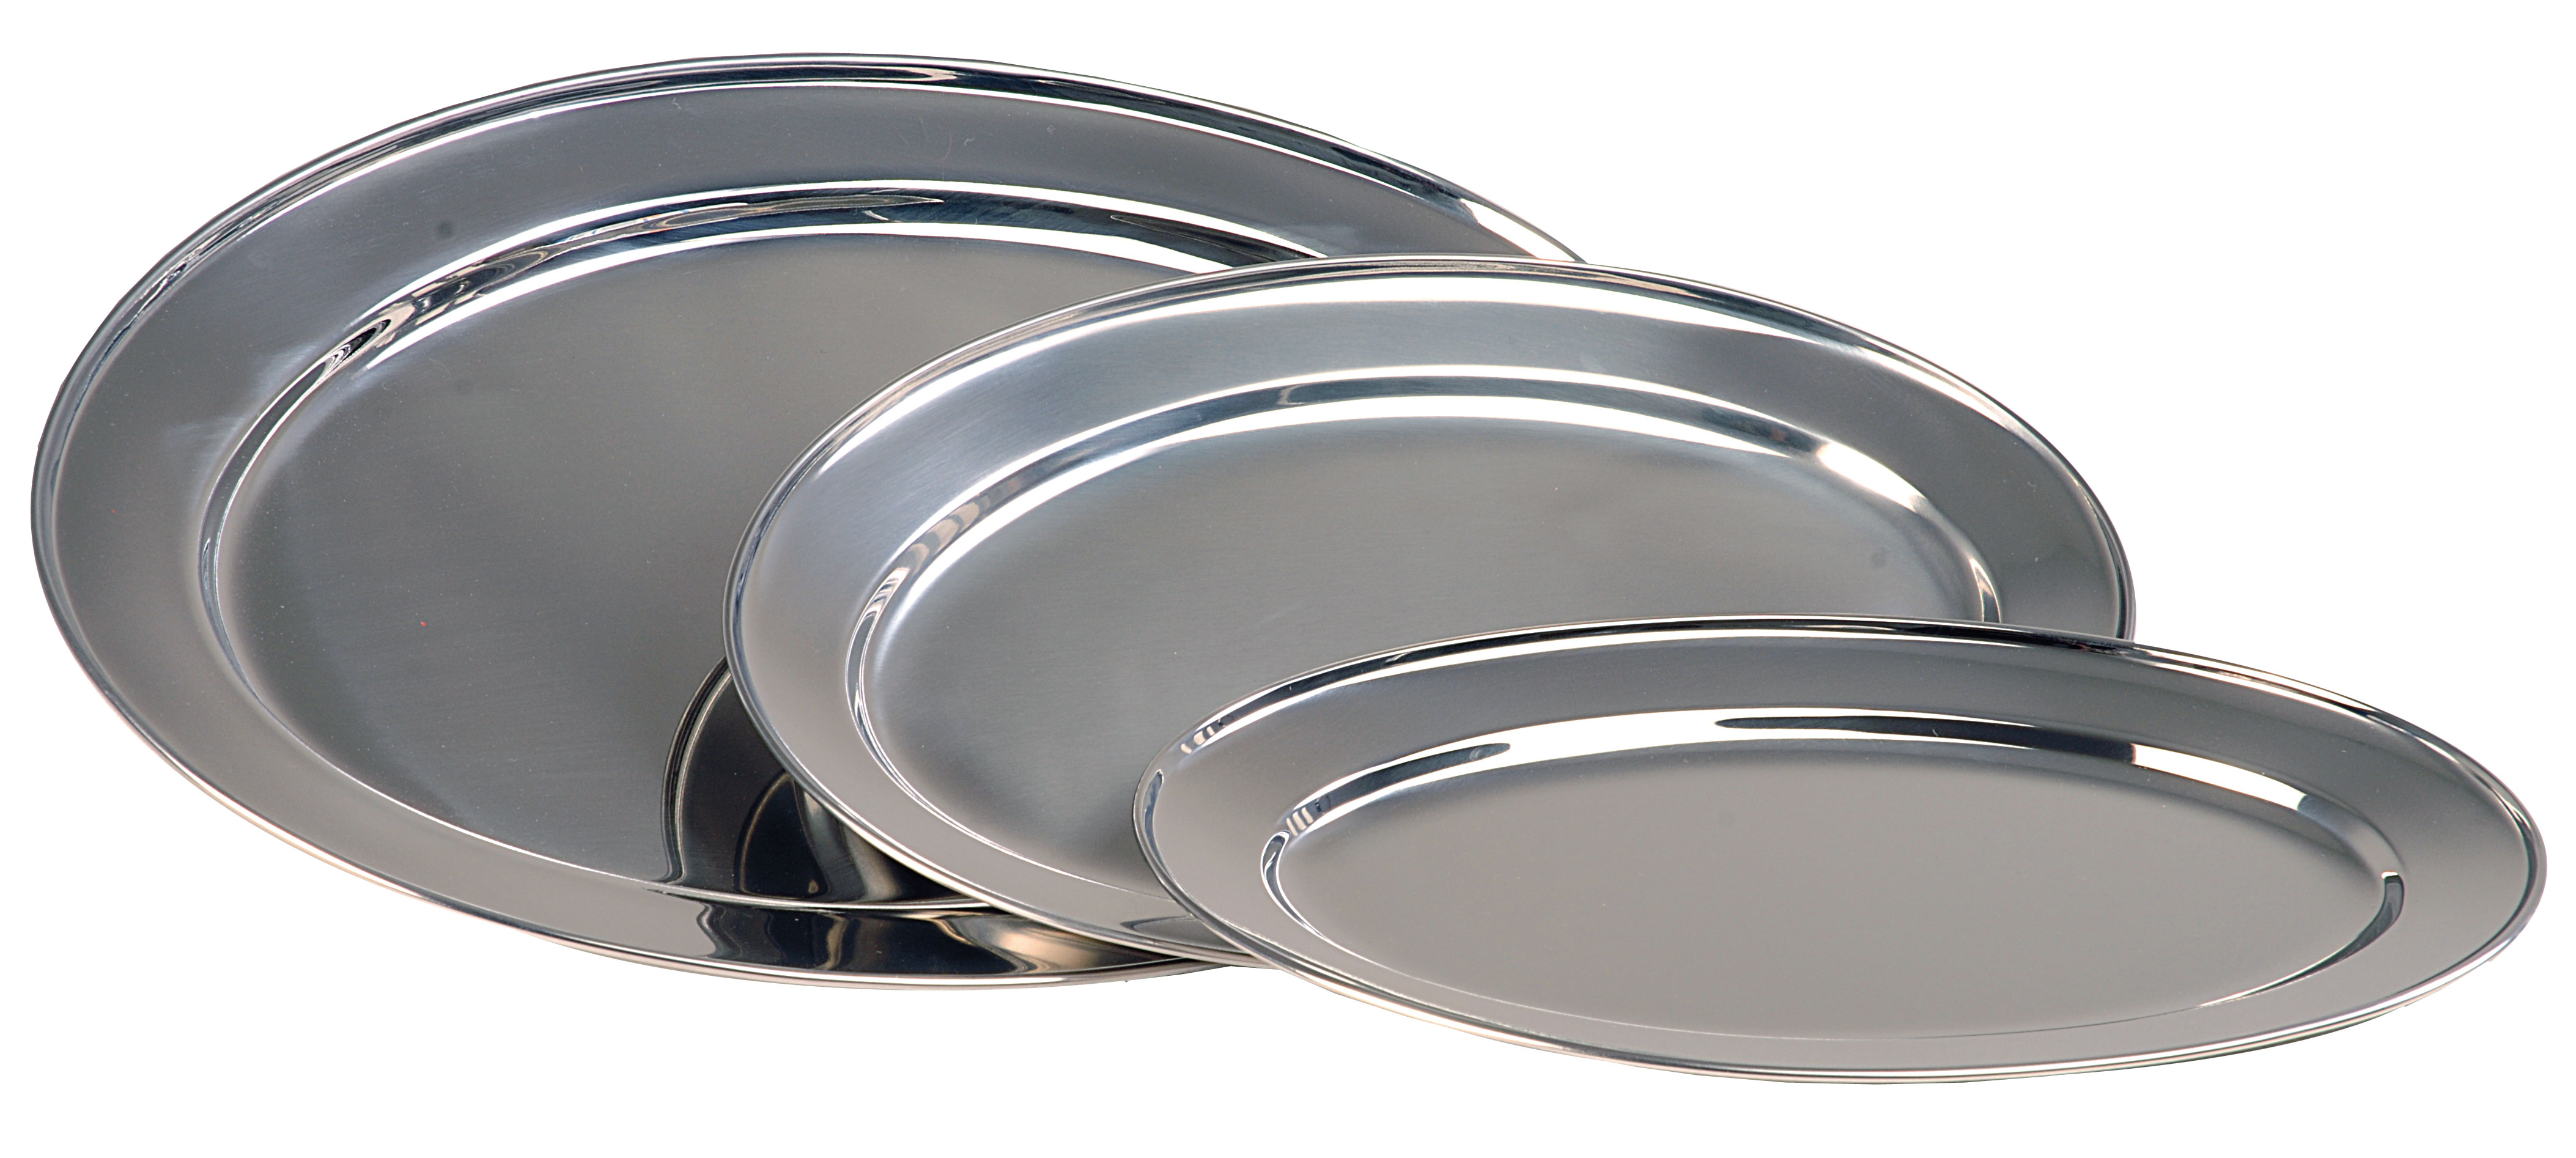 SERVING PLATTER OVAL S/STEEL - 410mm